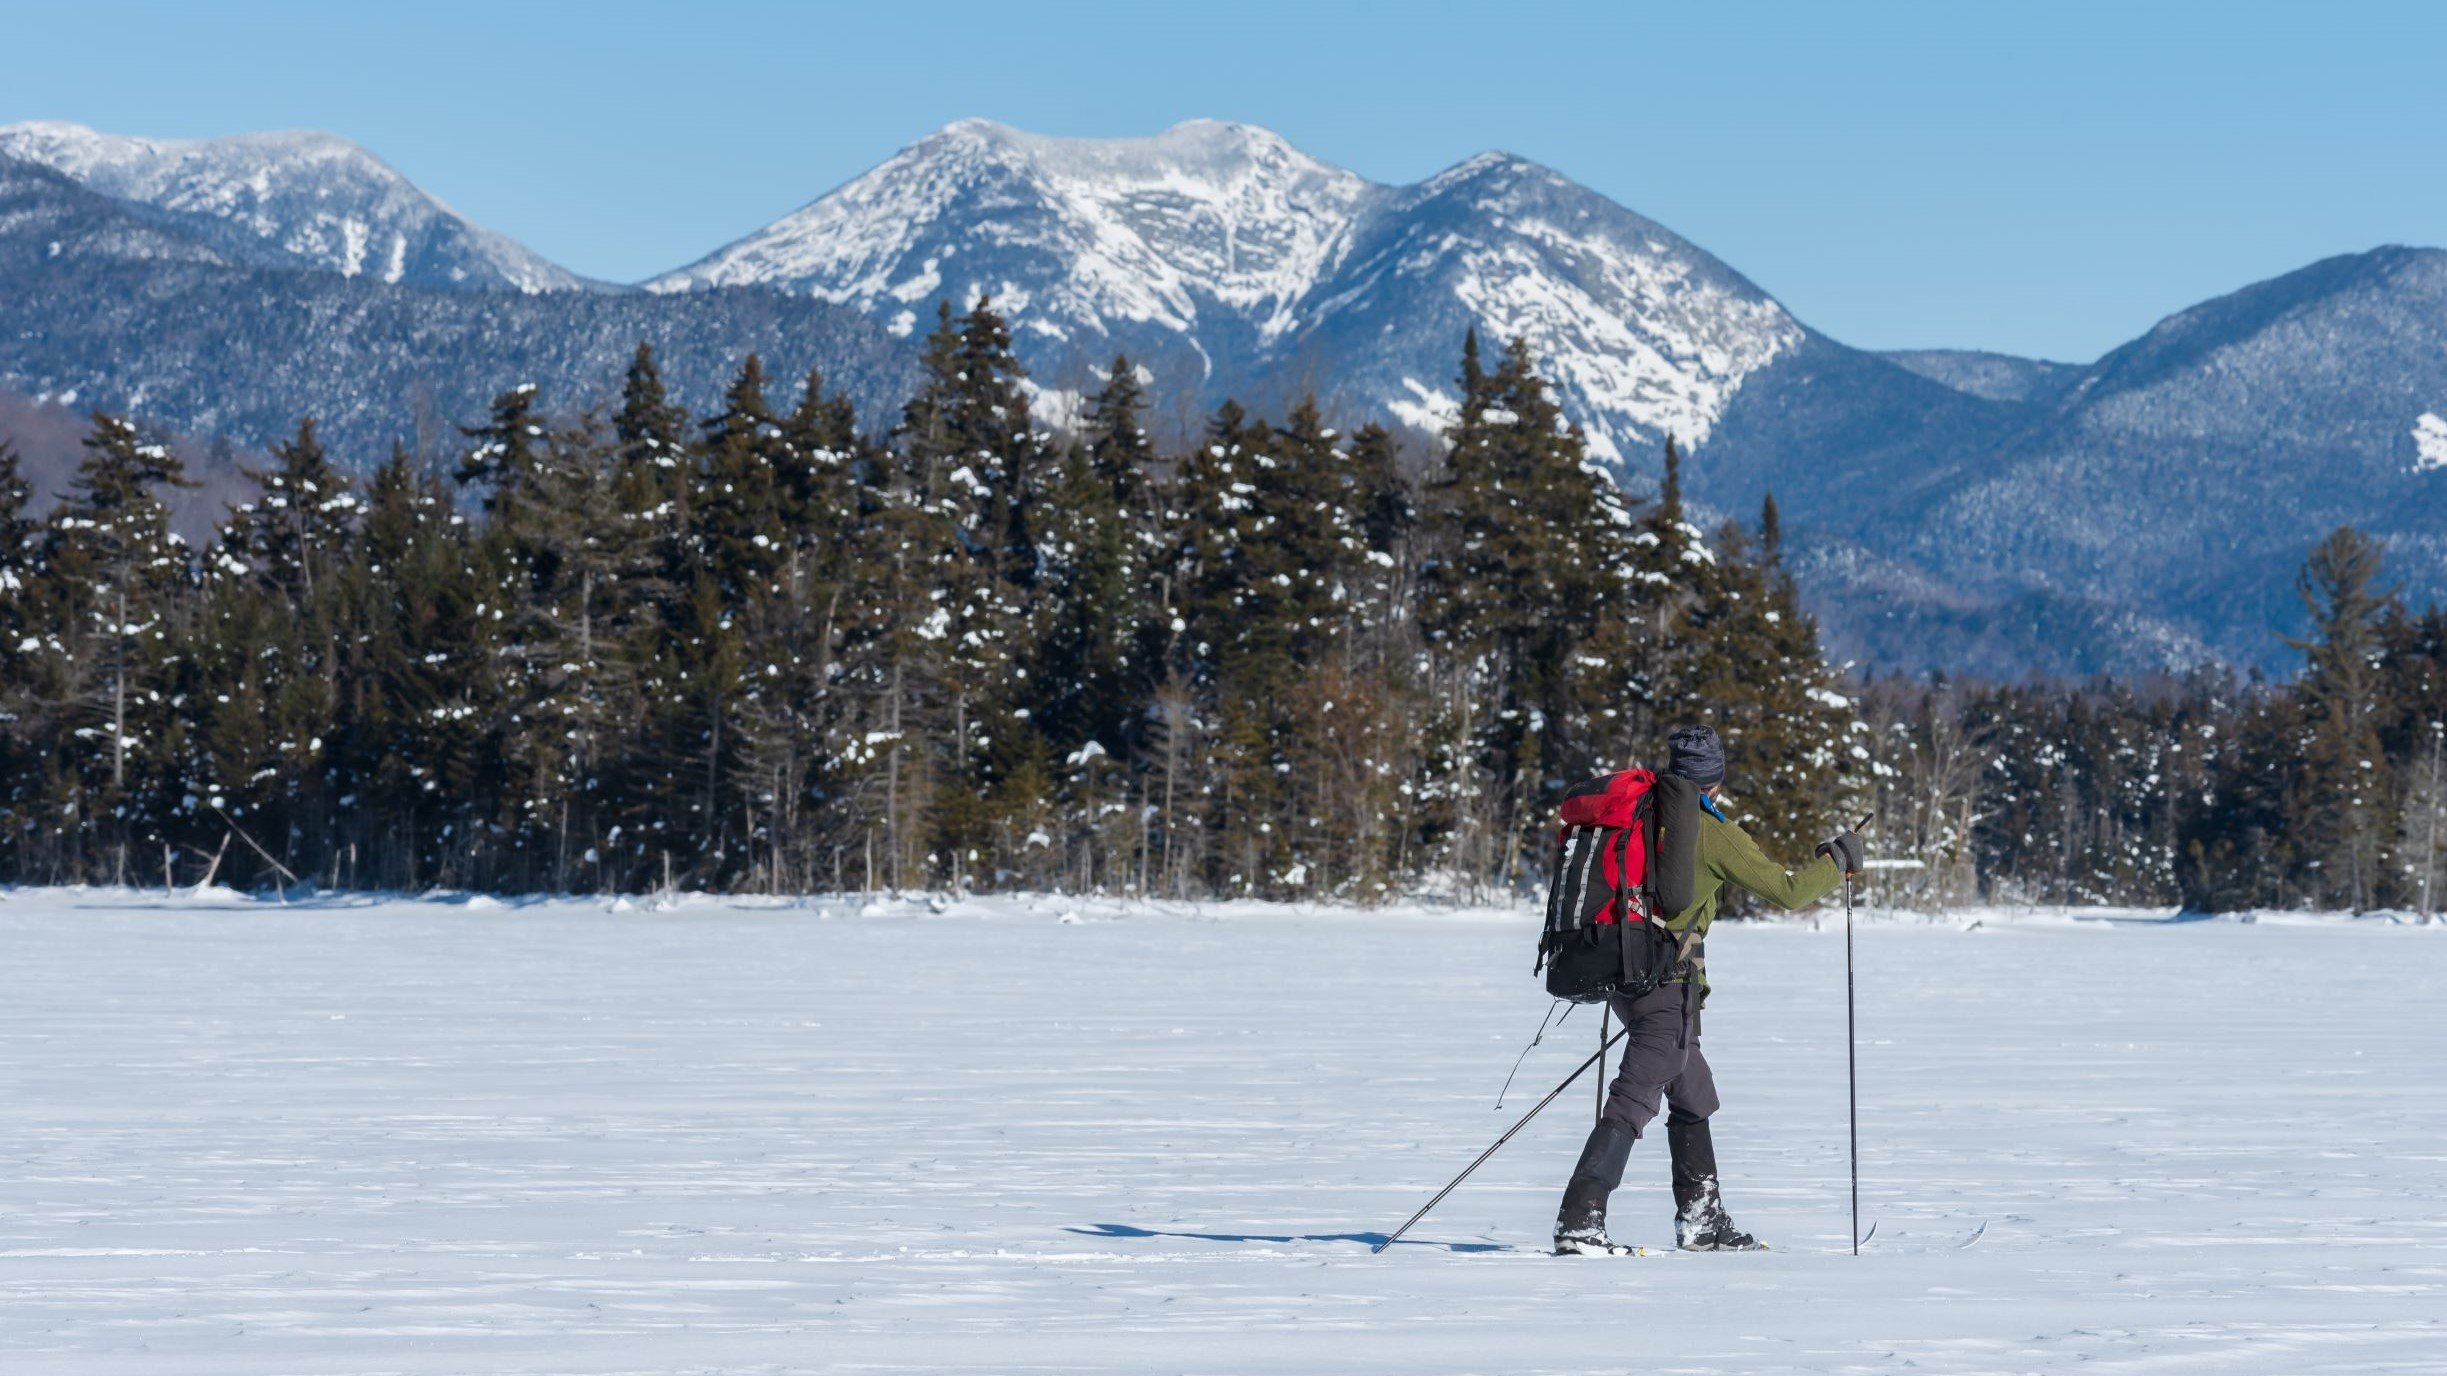 A man skis on a frozen lake while looking at a mountain